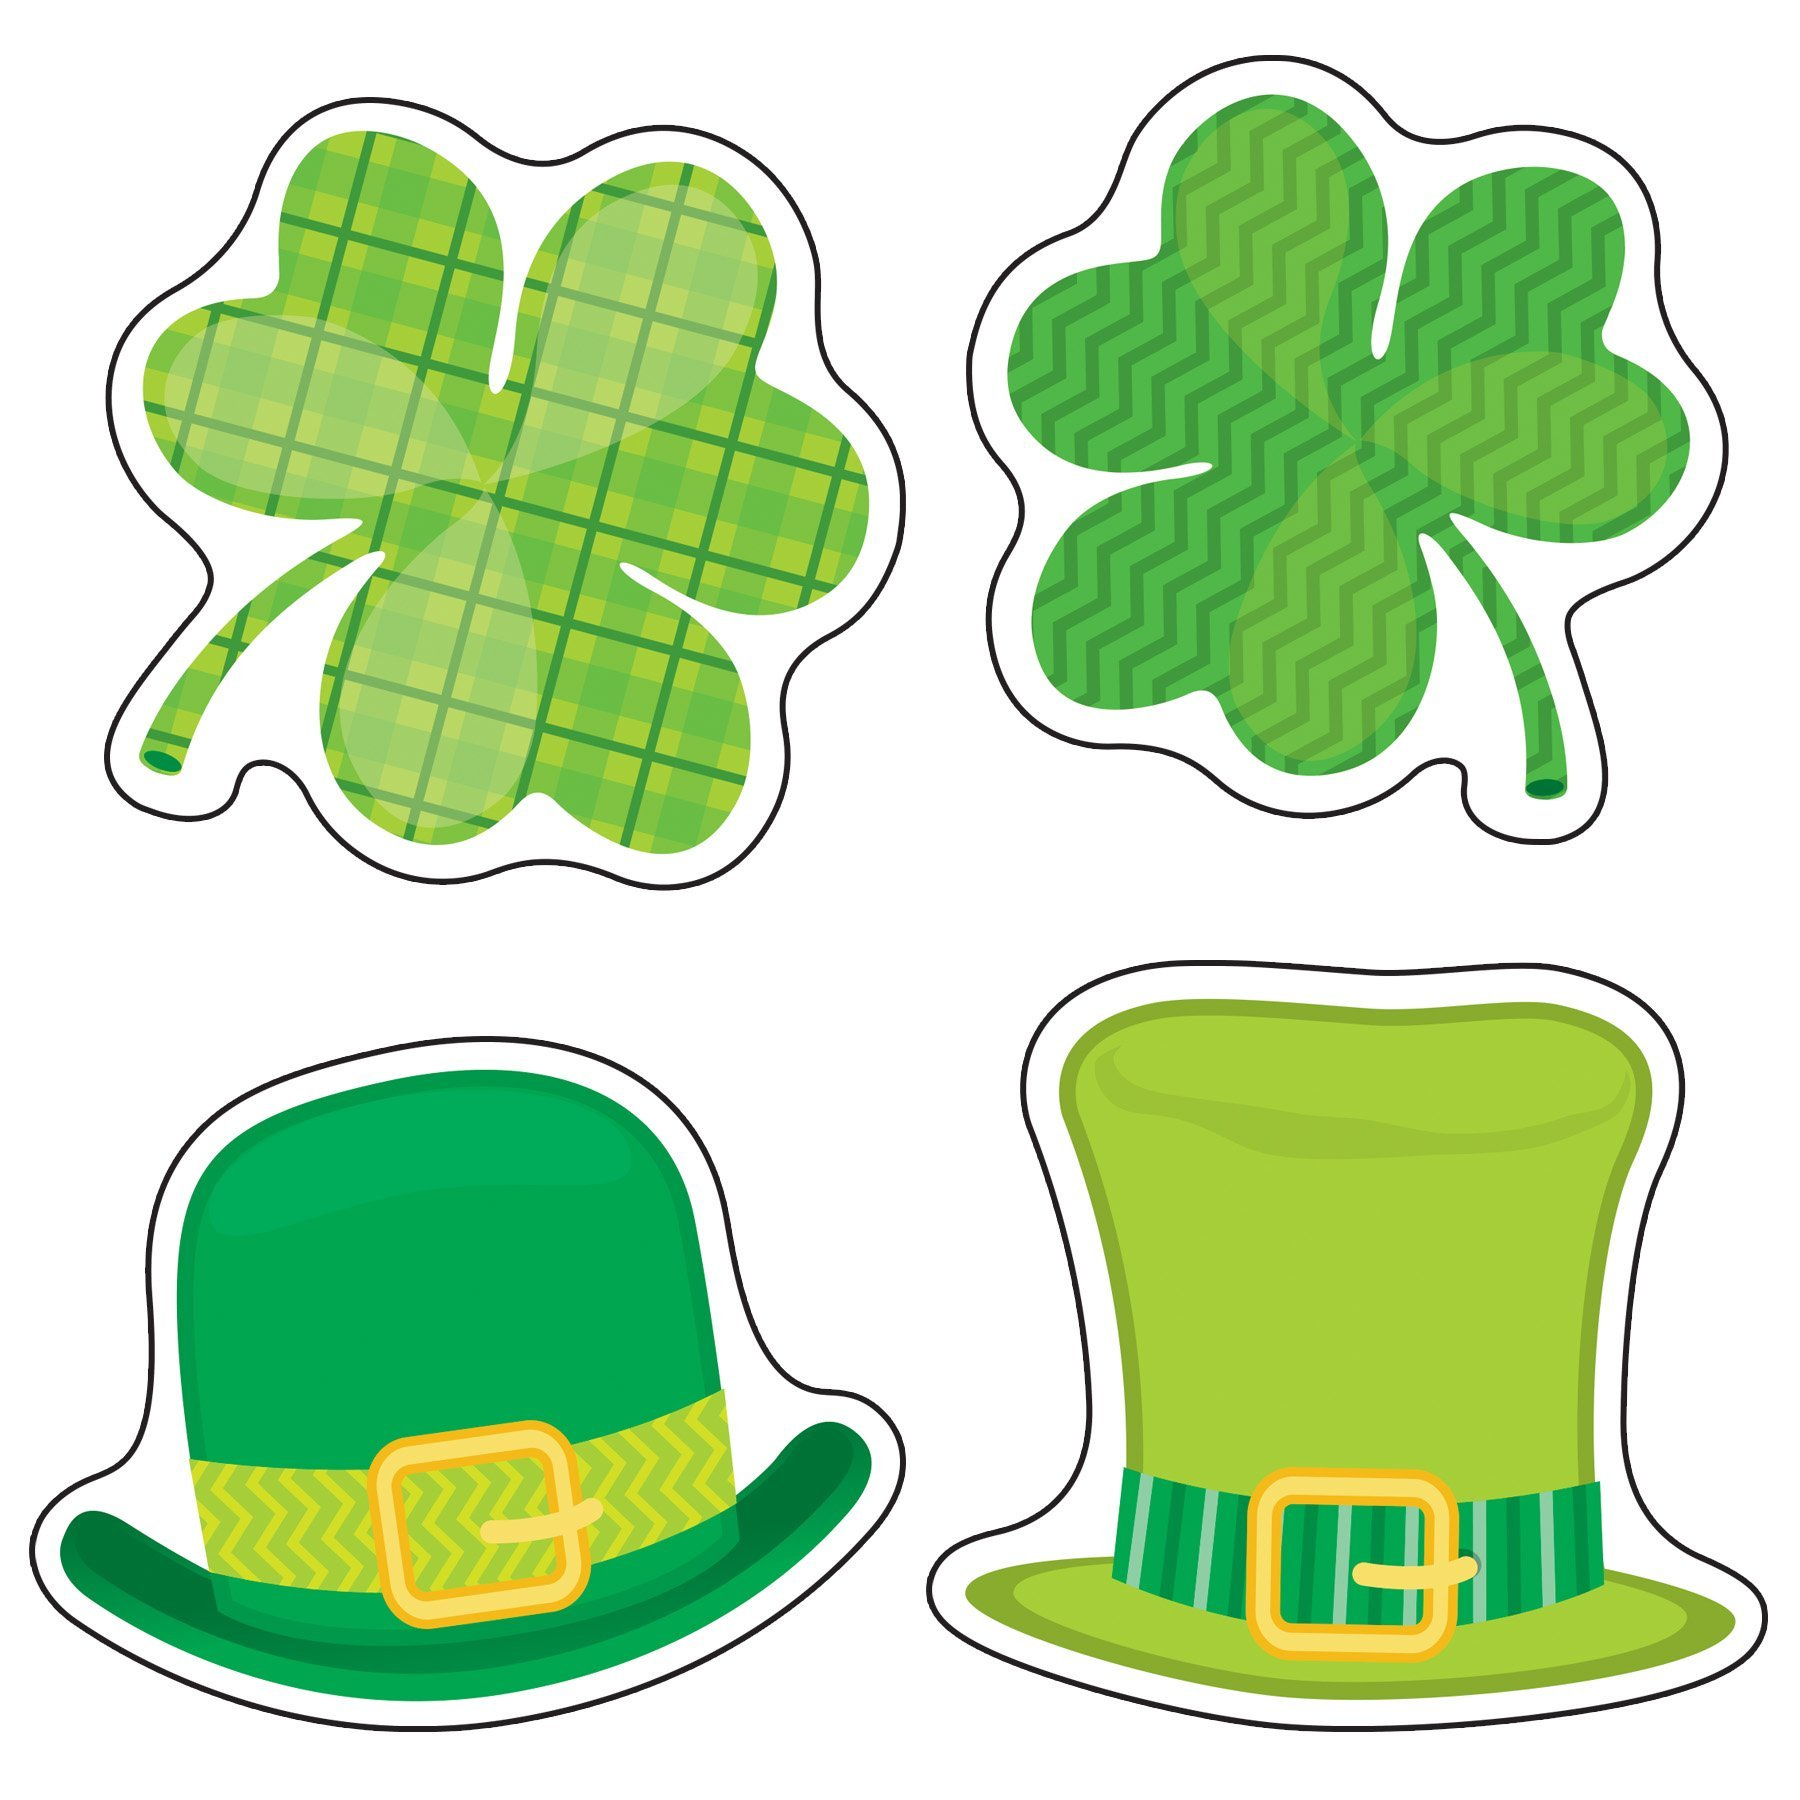 CD 120223 ST. PATRICK'S DAY MINI CUTOUTS